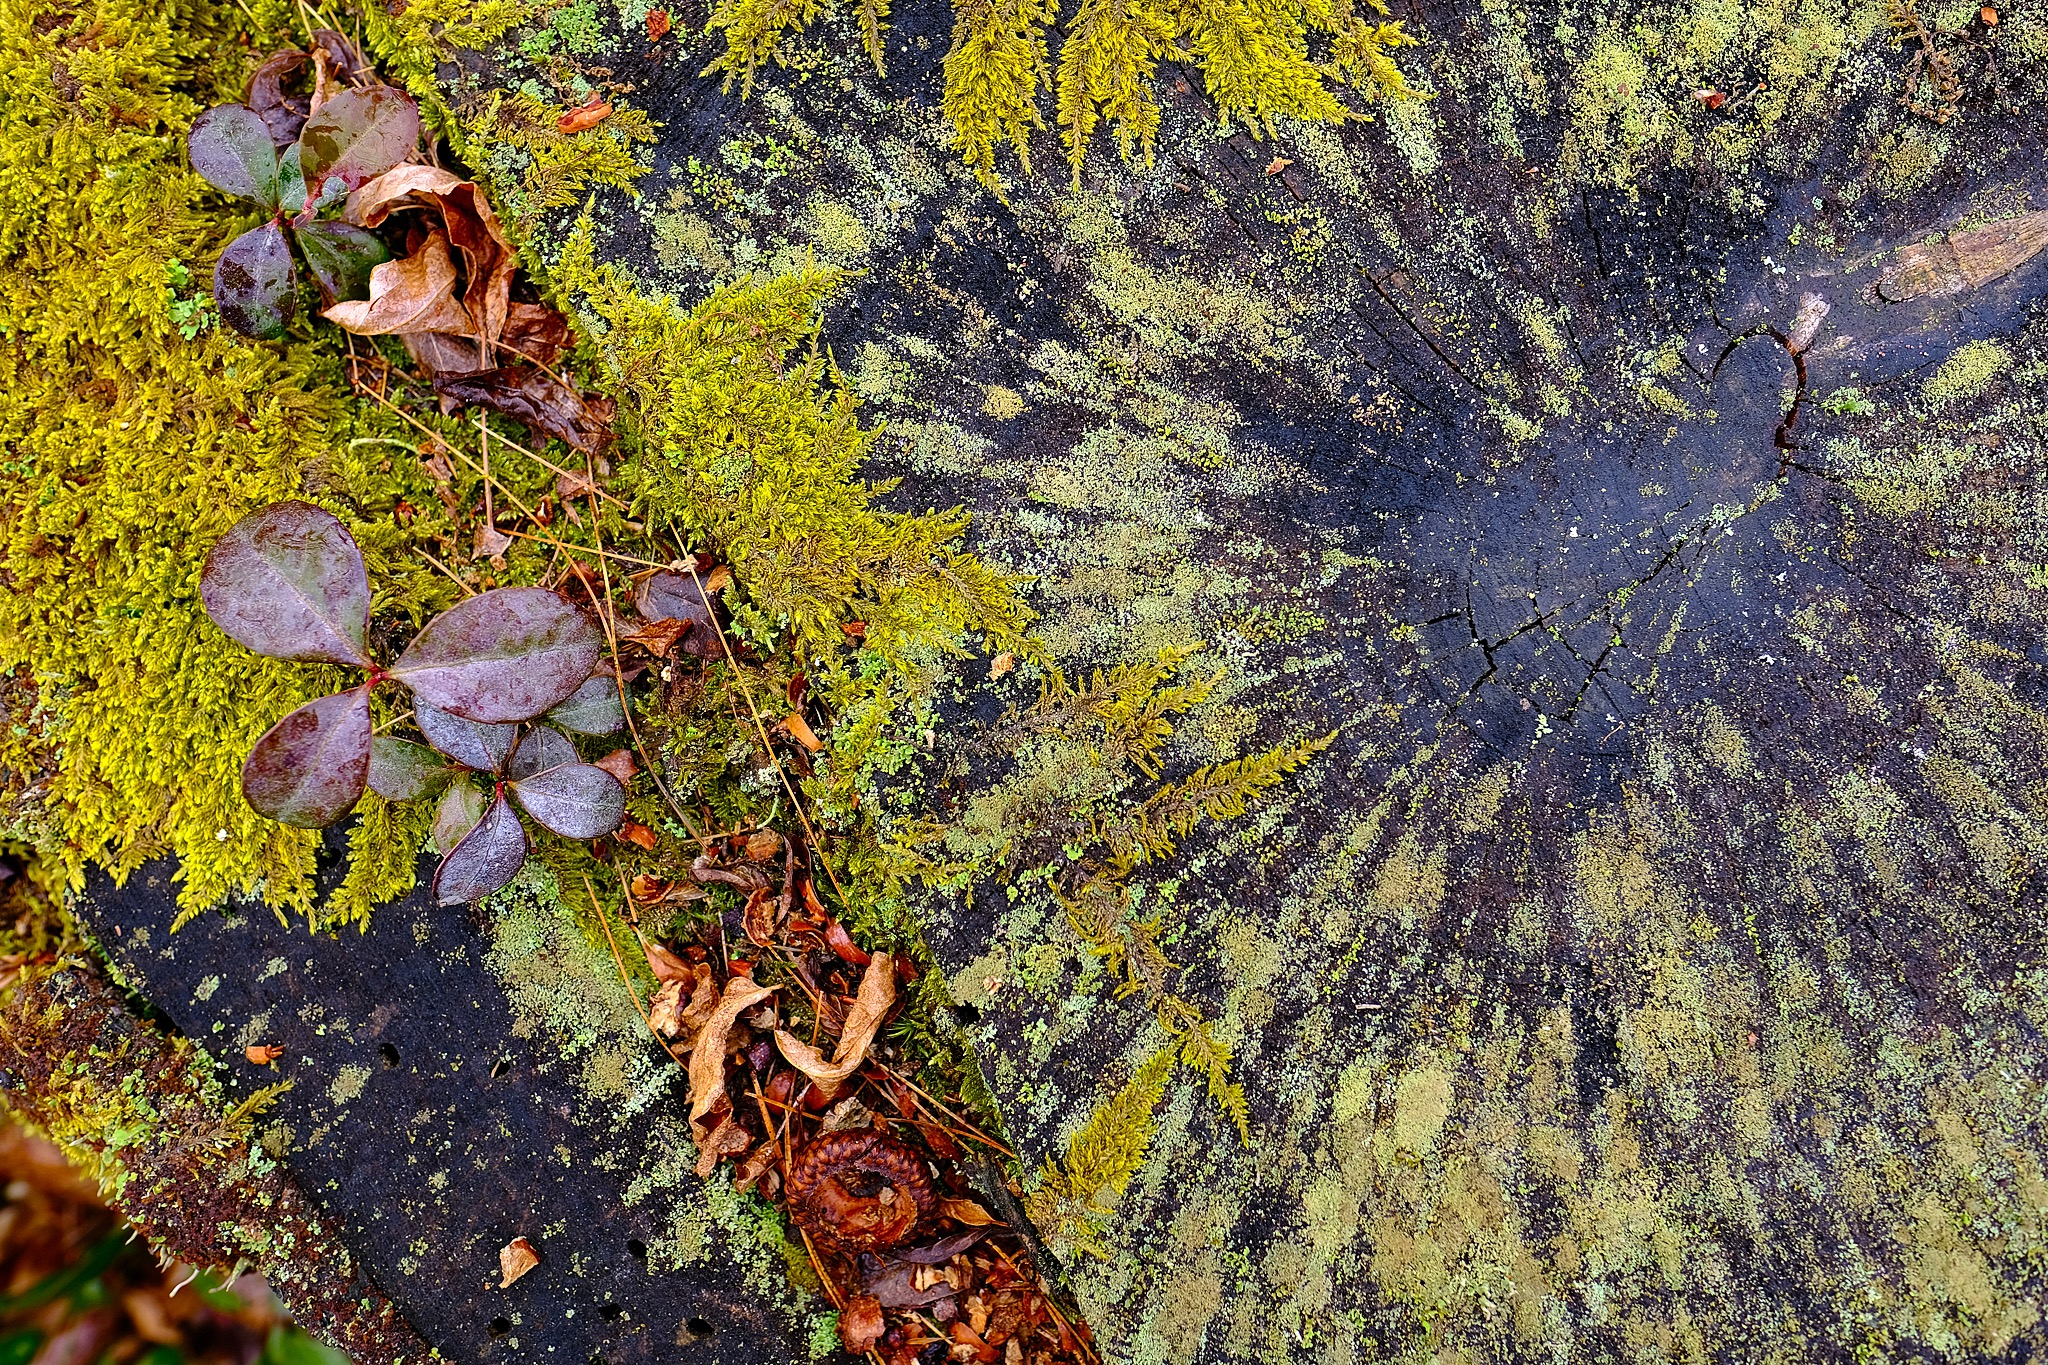 Looking straight down on a wet oak stump with green moss and lichen on its cut weathered surface.